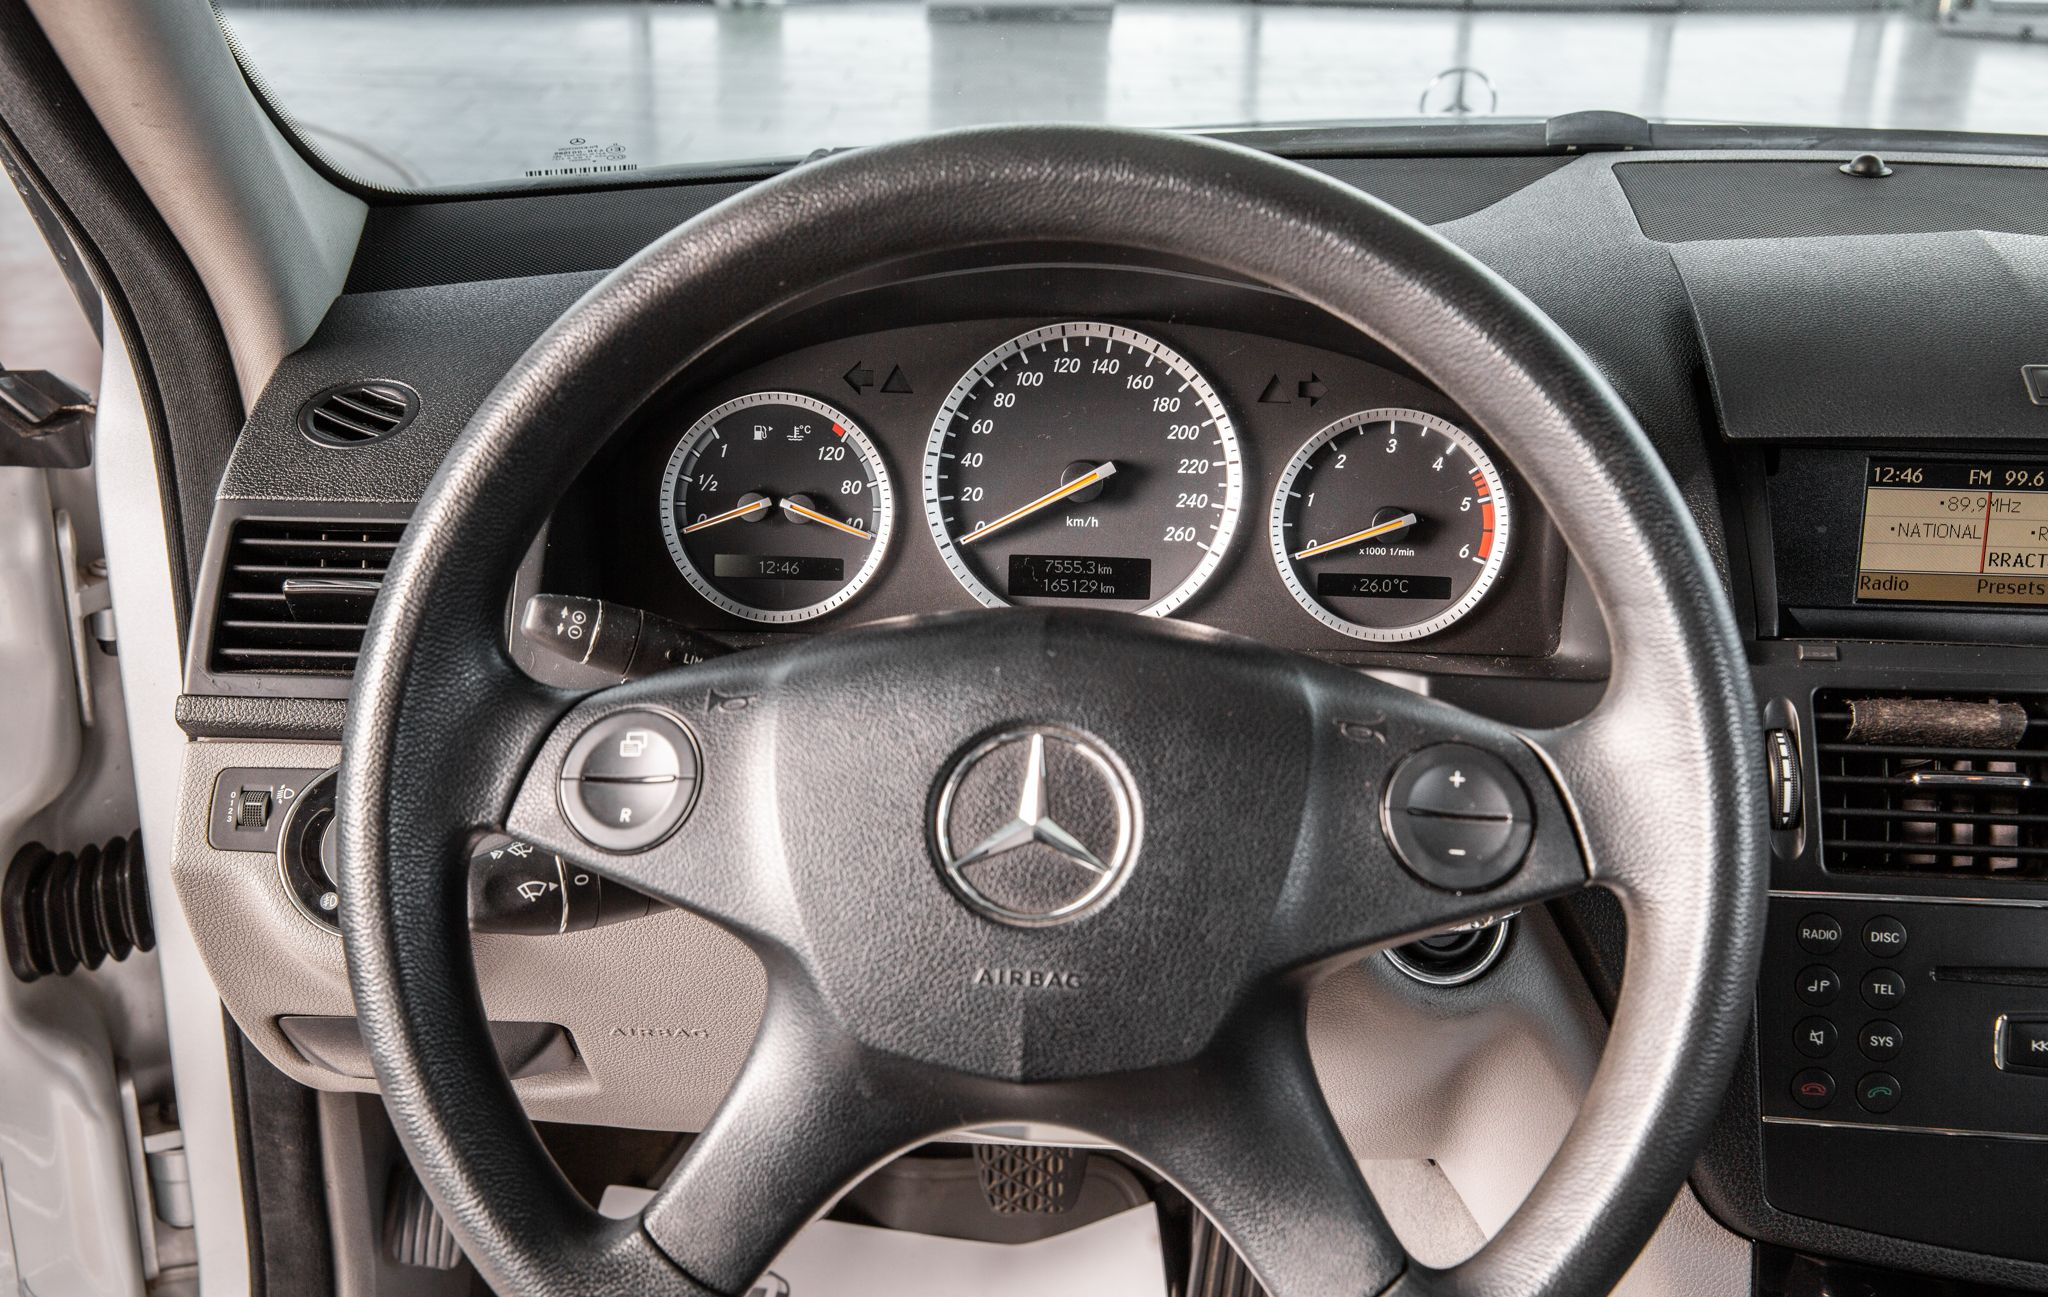 Mercedes-Benz C-Class 2008 Second Hand